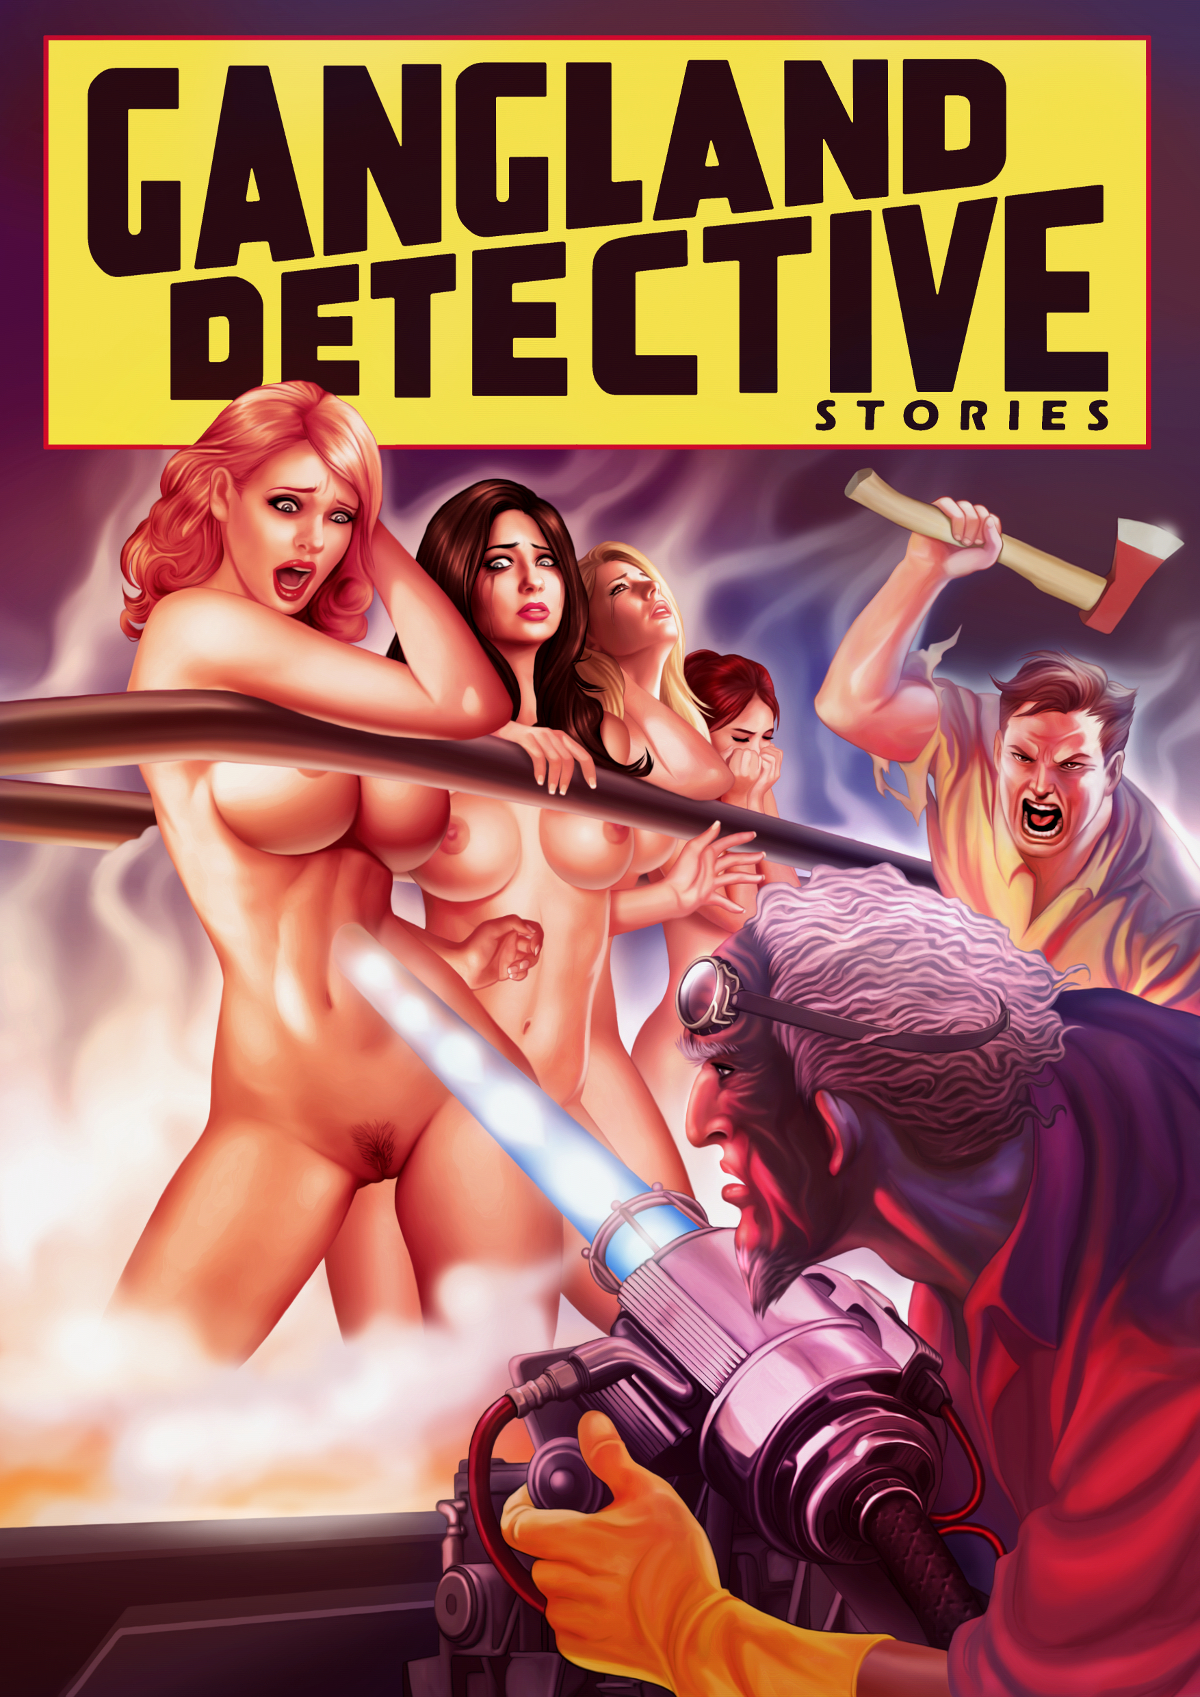 Naked girls menaced by a mad scientist with his death ray.